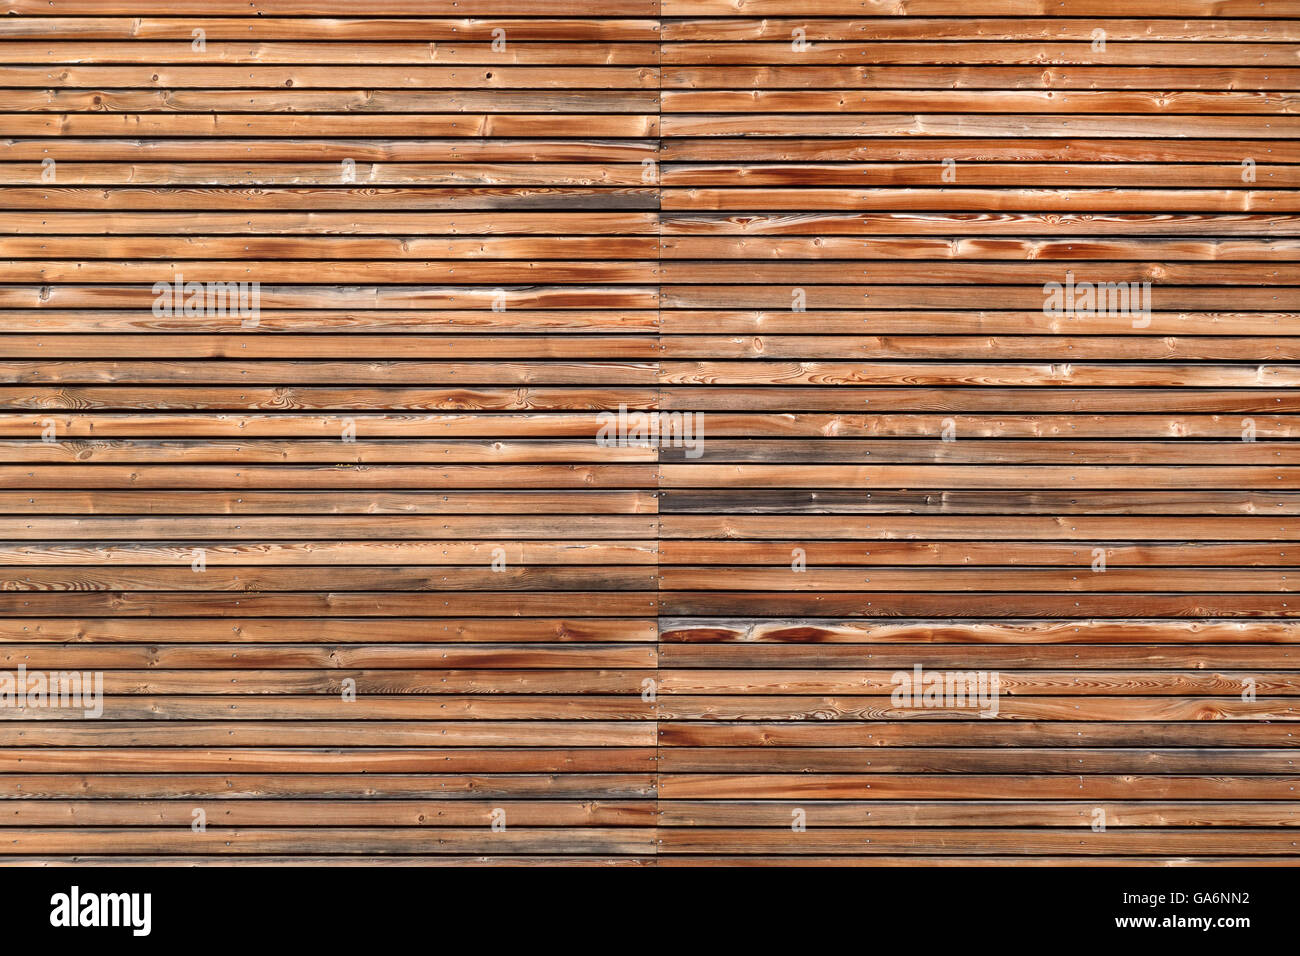 Wooden facade in horizontal format - Stock Image